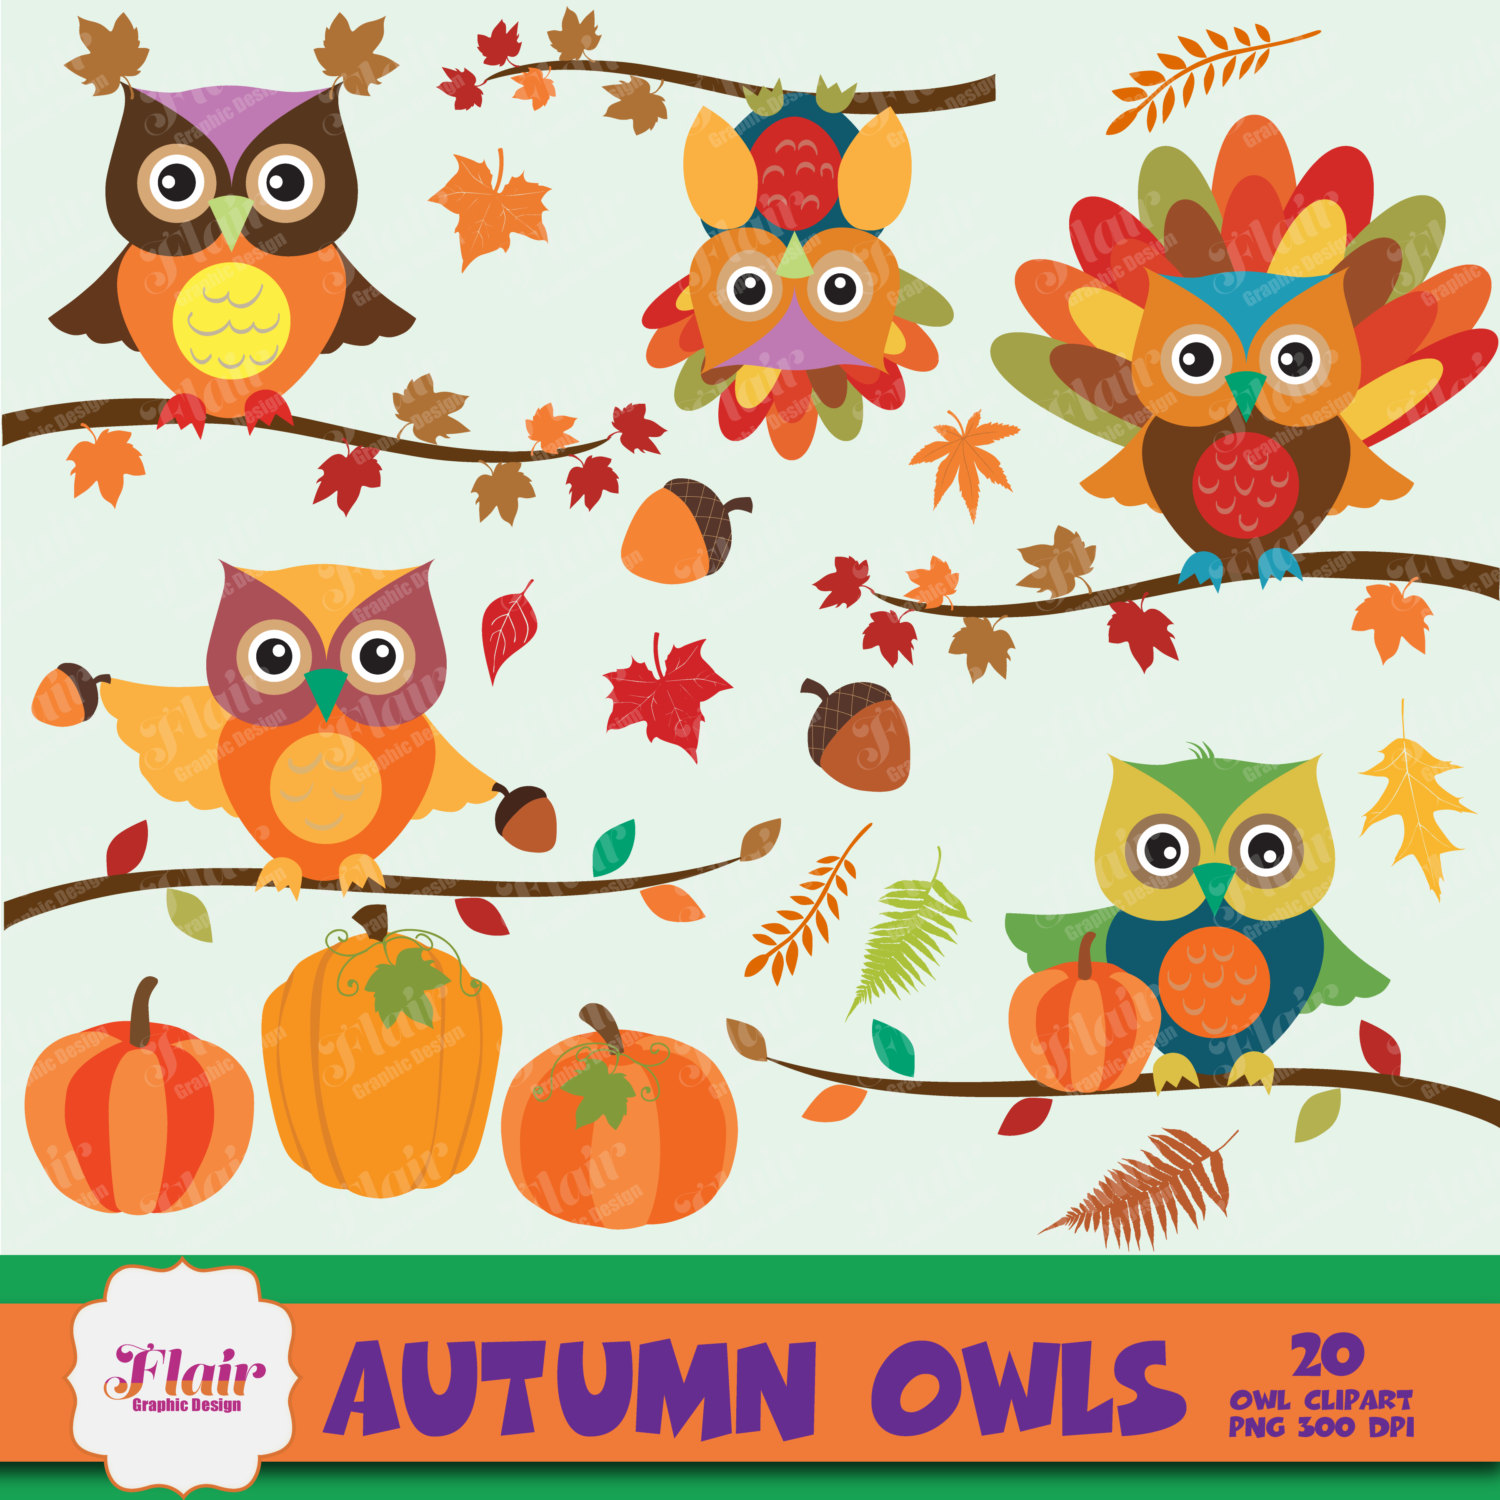 AUTUMN OWLS Digital Clipart, Pumpkin, Fall Colors, Thanksgiving.